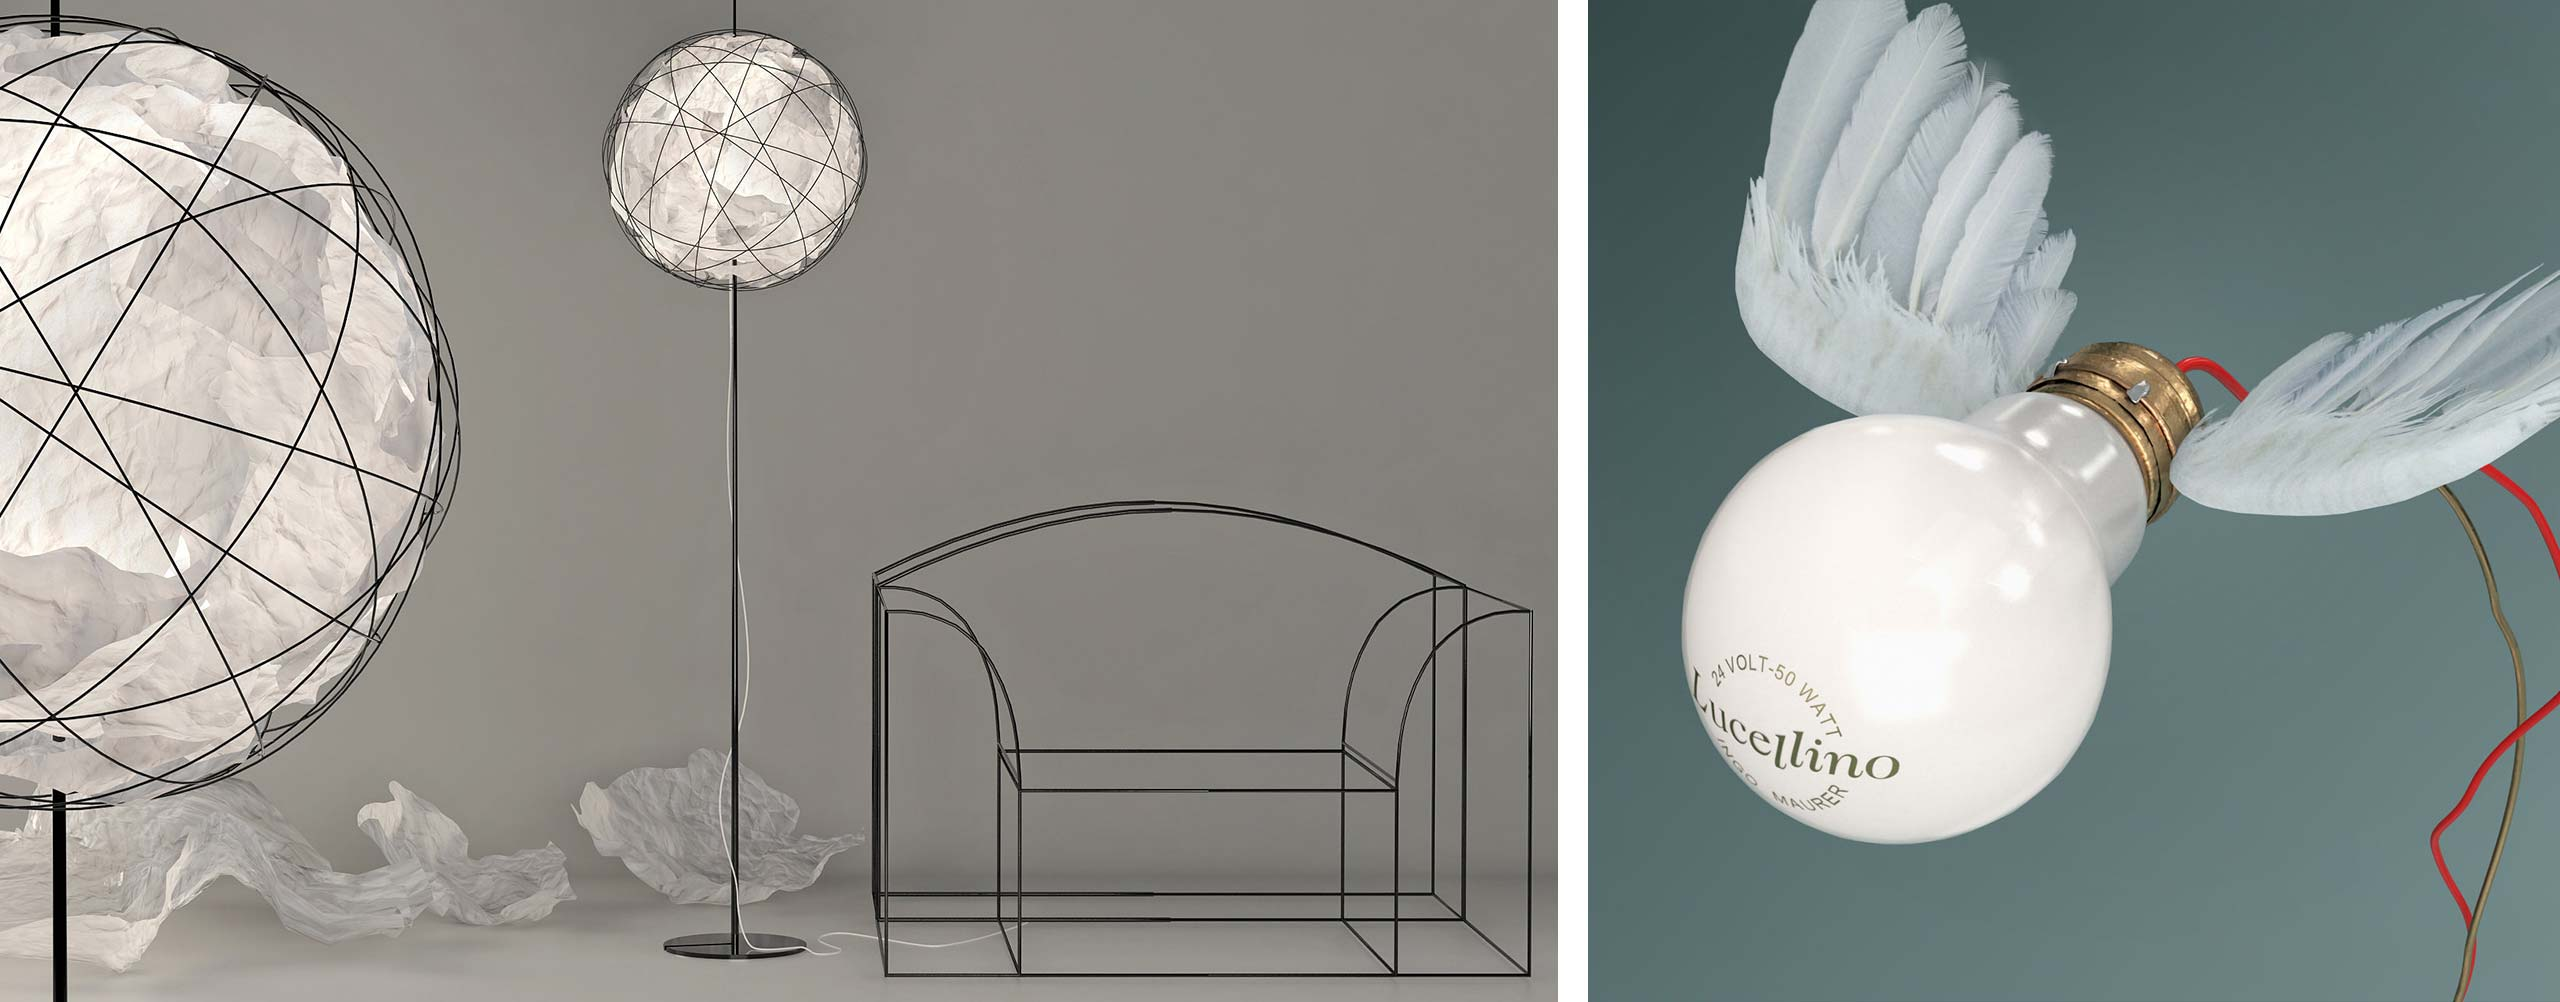 Ingo Maurer's cult KNÜLLER and LUCELLINO lamps - 3d models and CGI by Design Connected